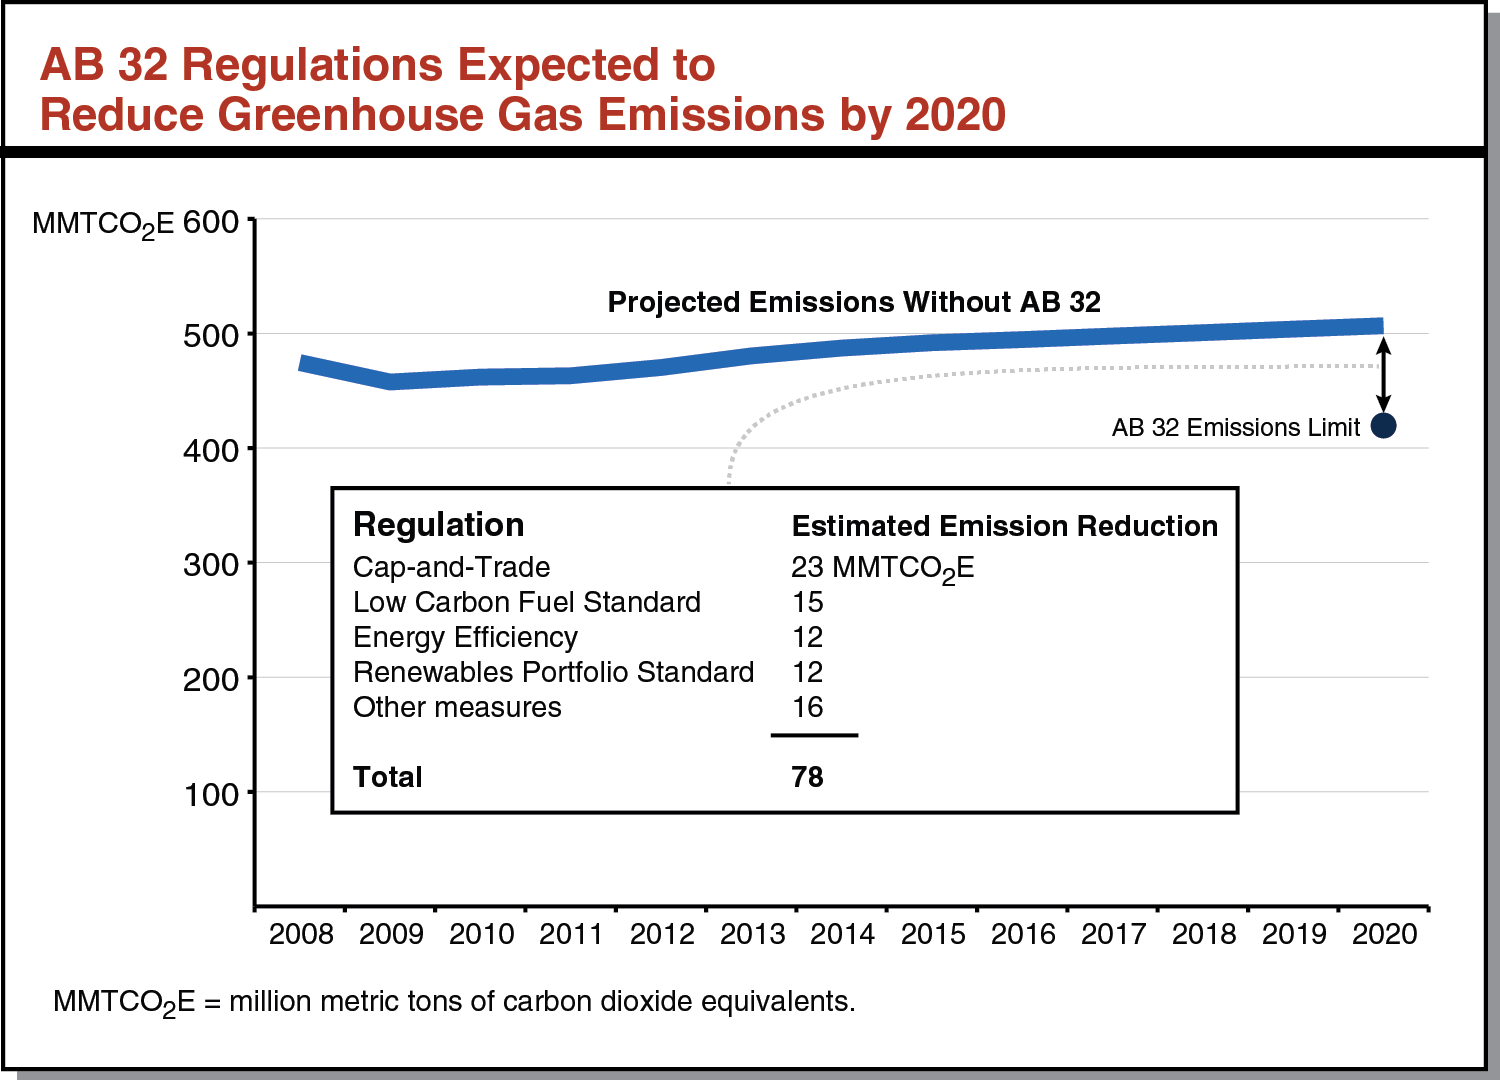 AB 32 Regulations Expected to Reduce Greenhouse Gas Emissions by 2020